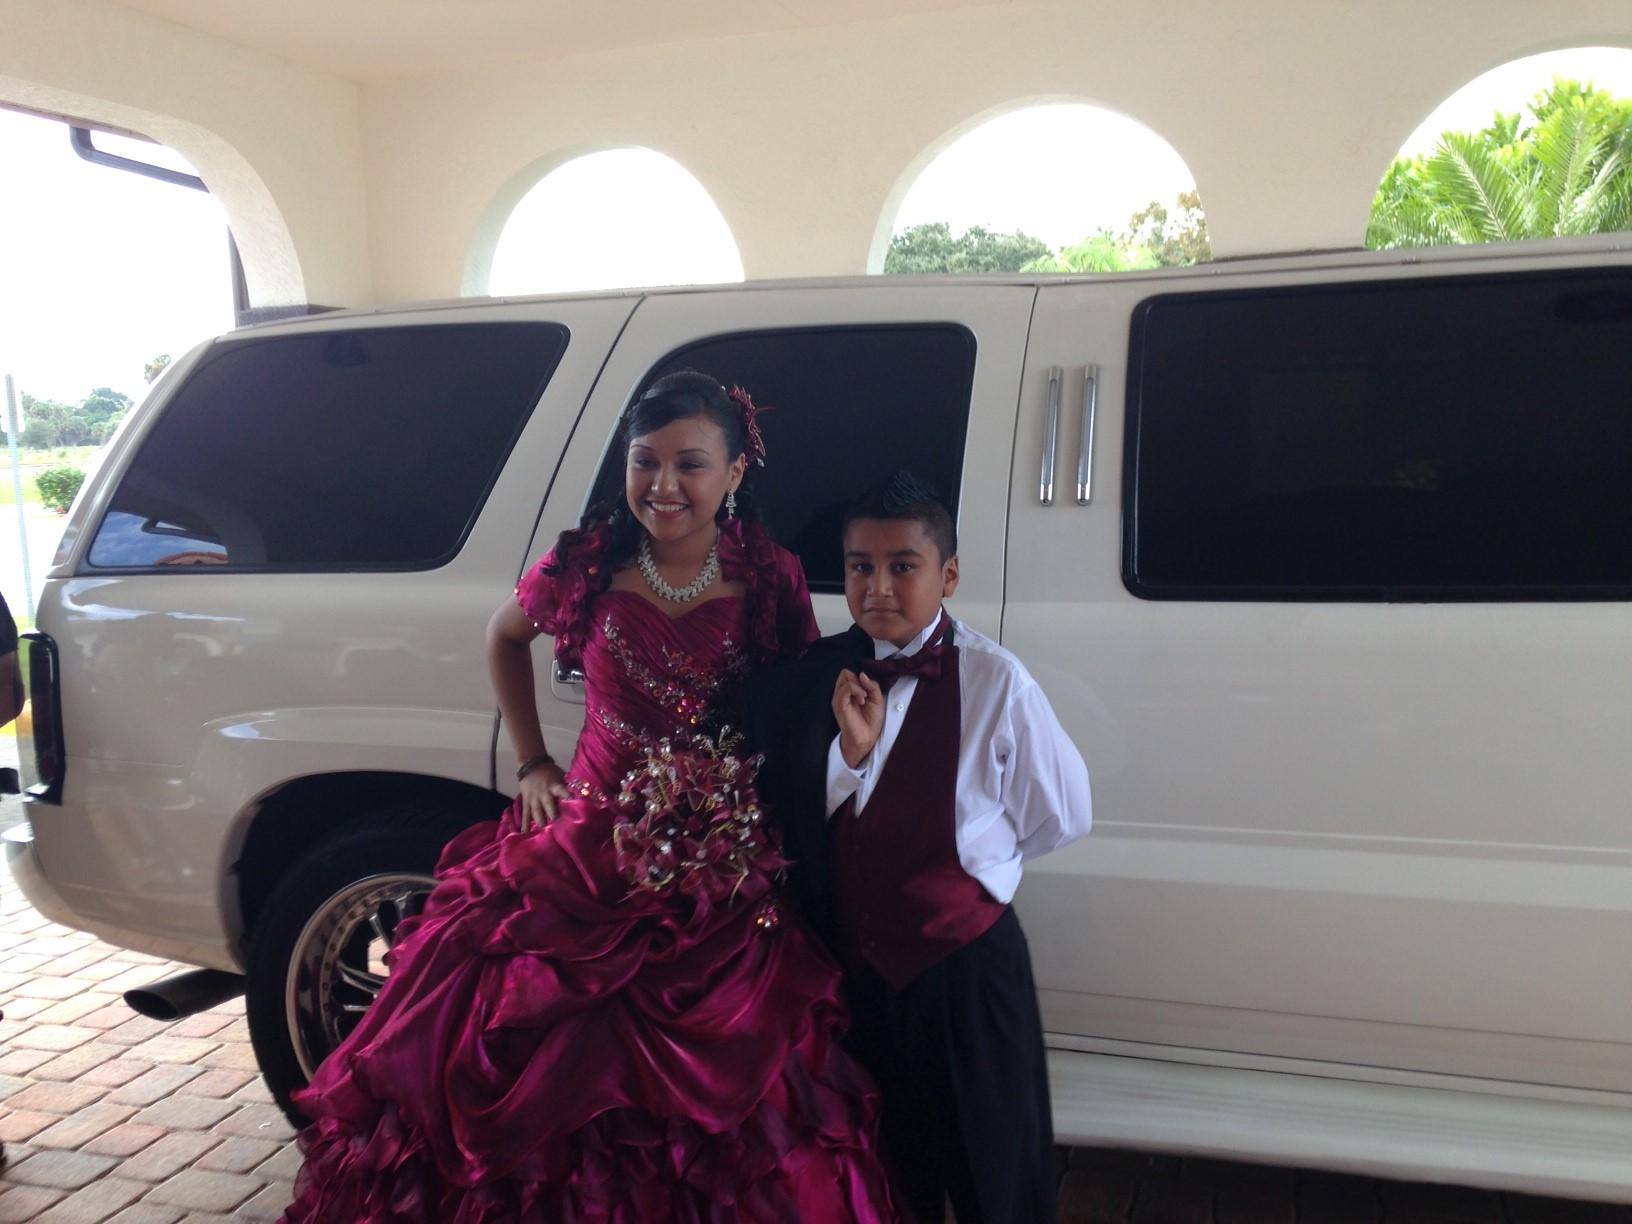 Quinceanera Poses next to Caddy Limo